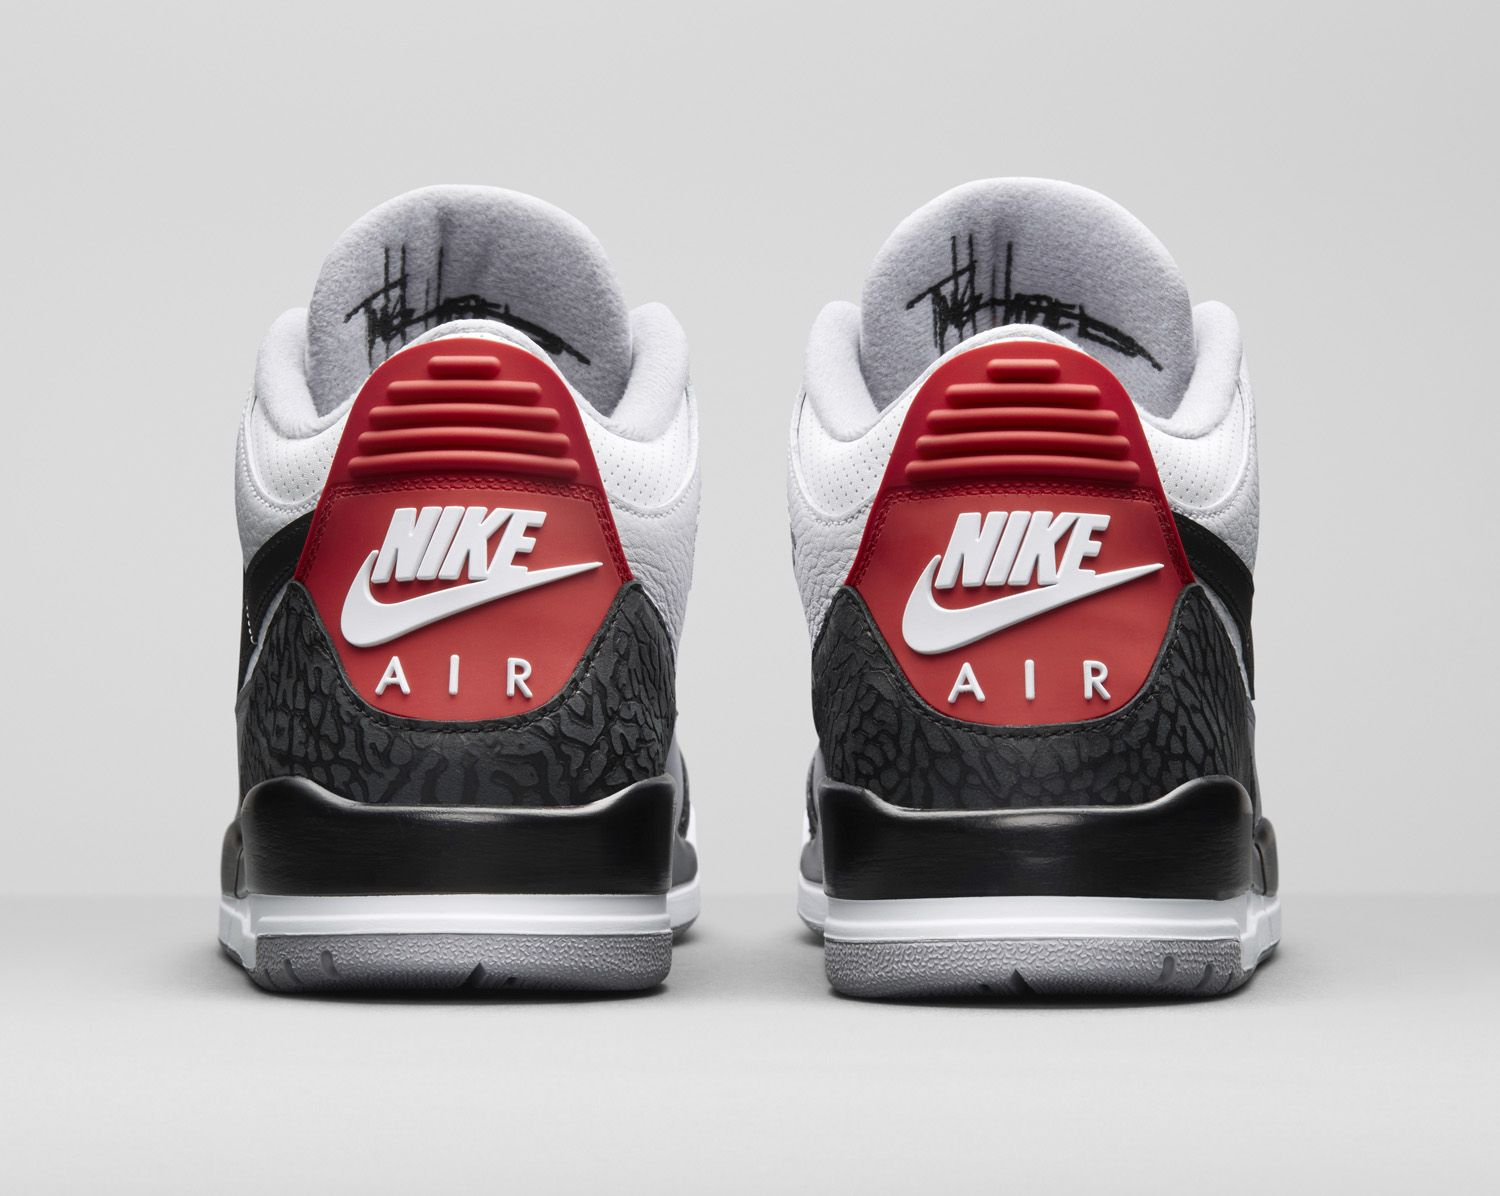 927a6b5f91d4 The Original Air Jordan 3 Sketch Comes to Life with the Air Jordan 3   Tinker  - WearTesters